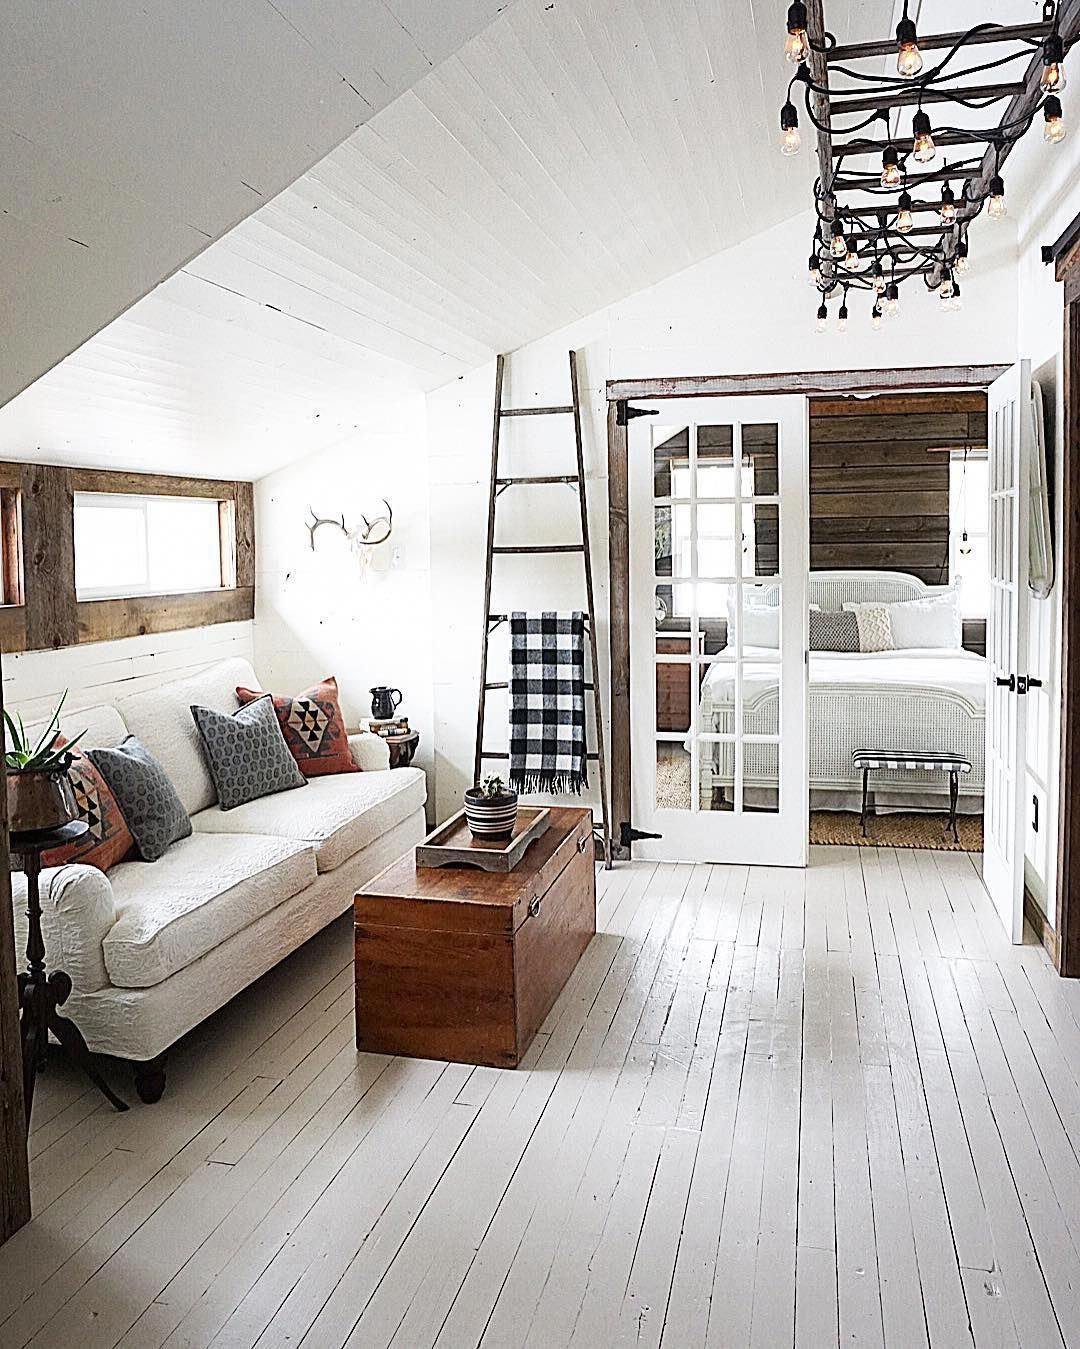 35+ Clever Use of Attic Room Design and Remodel Ideas #atticapartment